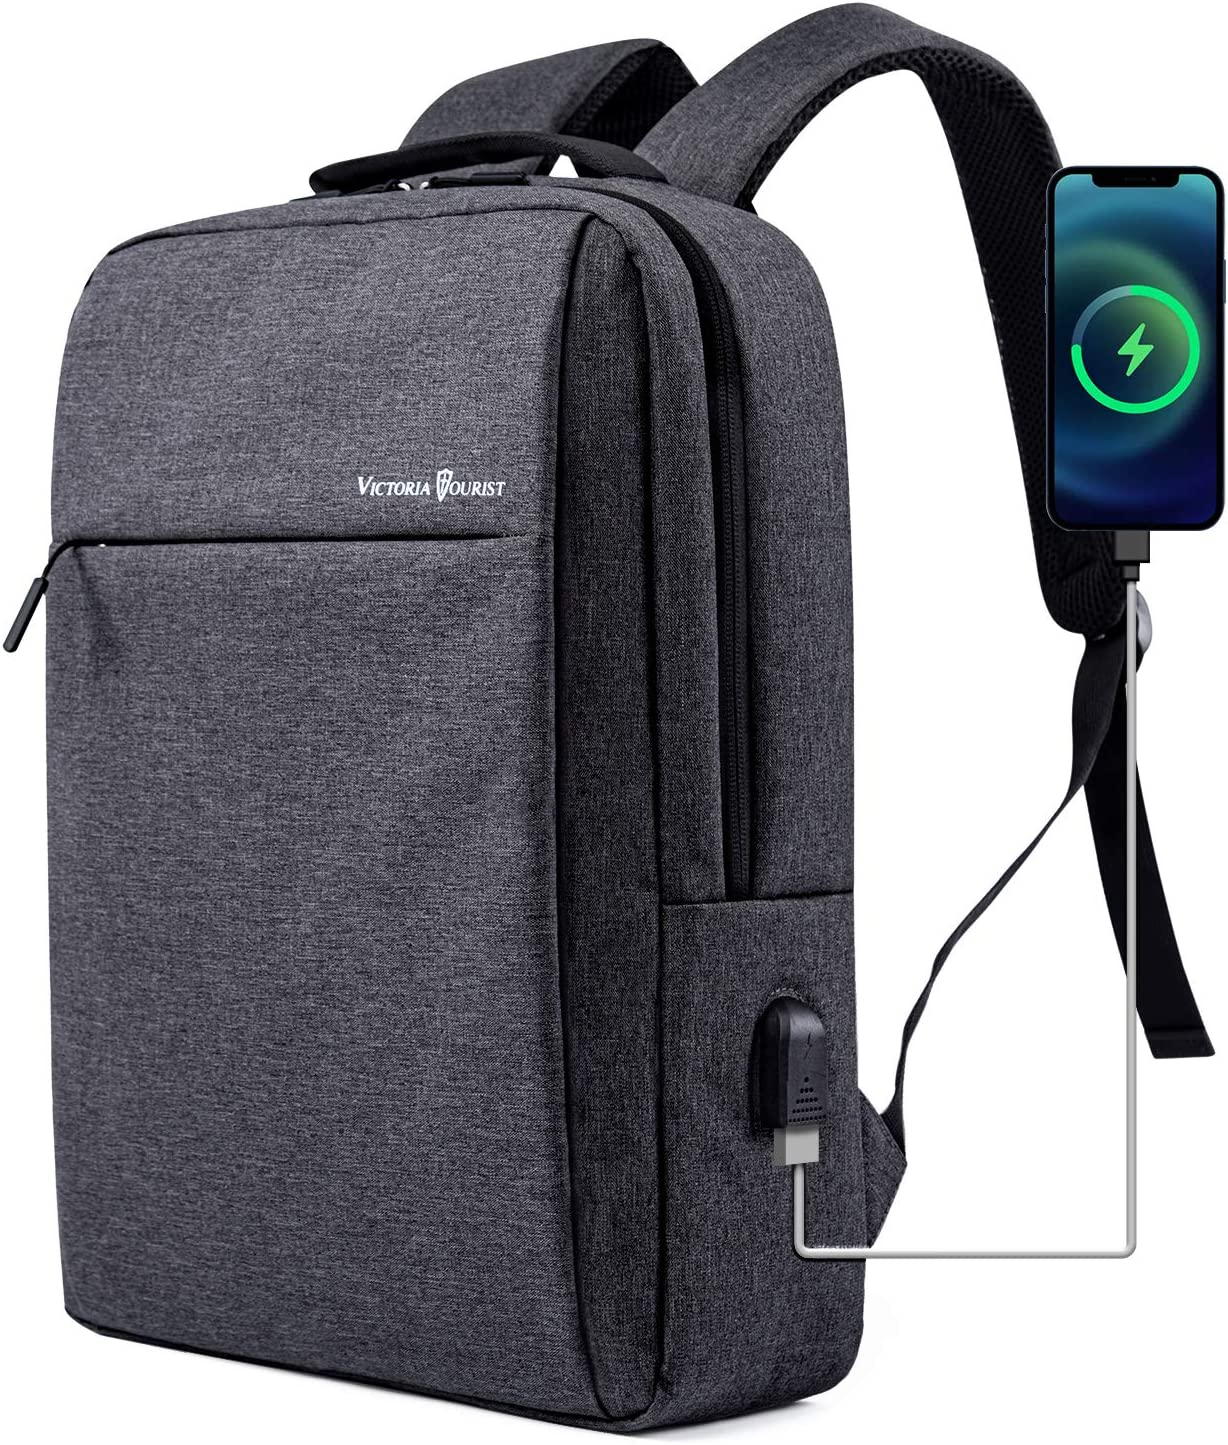 Laptop Backpack 15.6 Inch, Business Slim Durable Laptops Travel Backpacks with USB Charging Port, College School Computer Bag Gifts for Men and Women Fits Notebook (Grey)